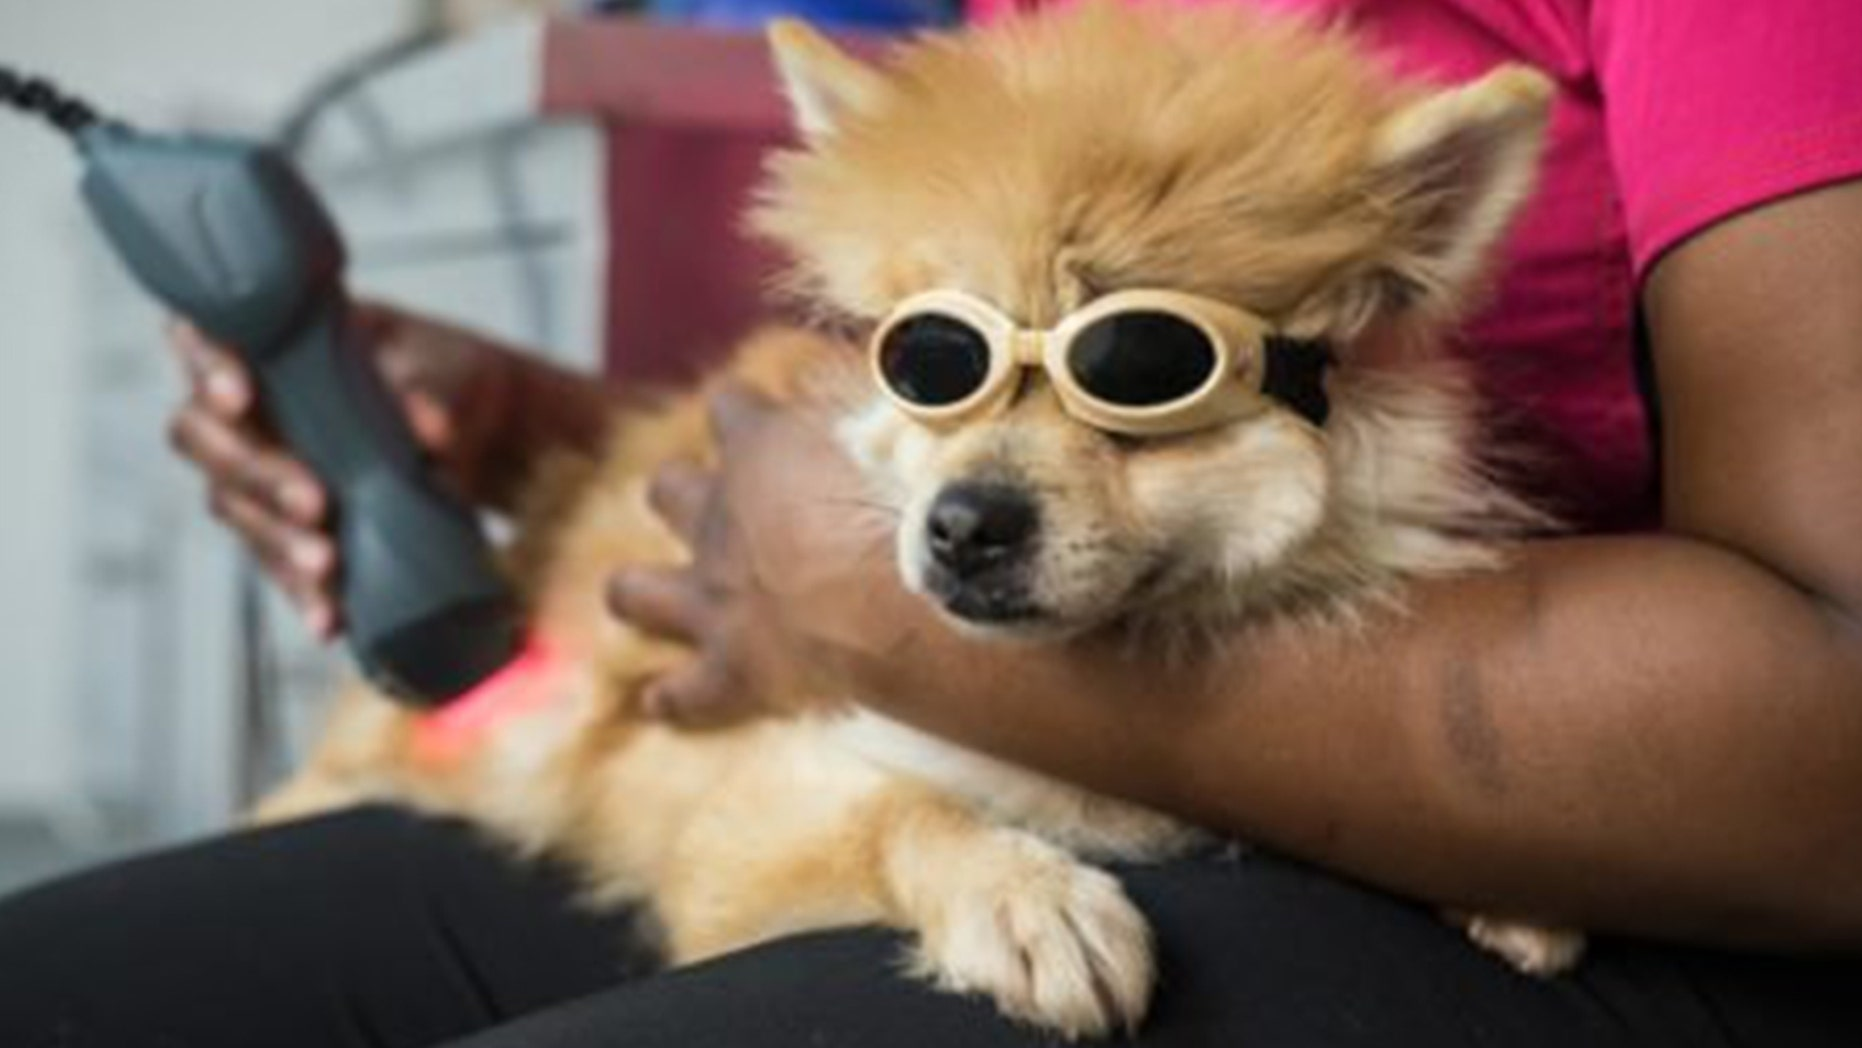 A paralyzed young Pomeranian has seen a miracle recovery thanks to special water therapy.